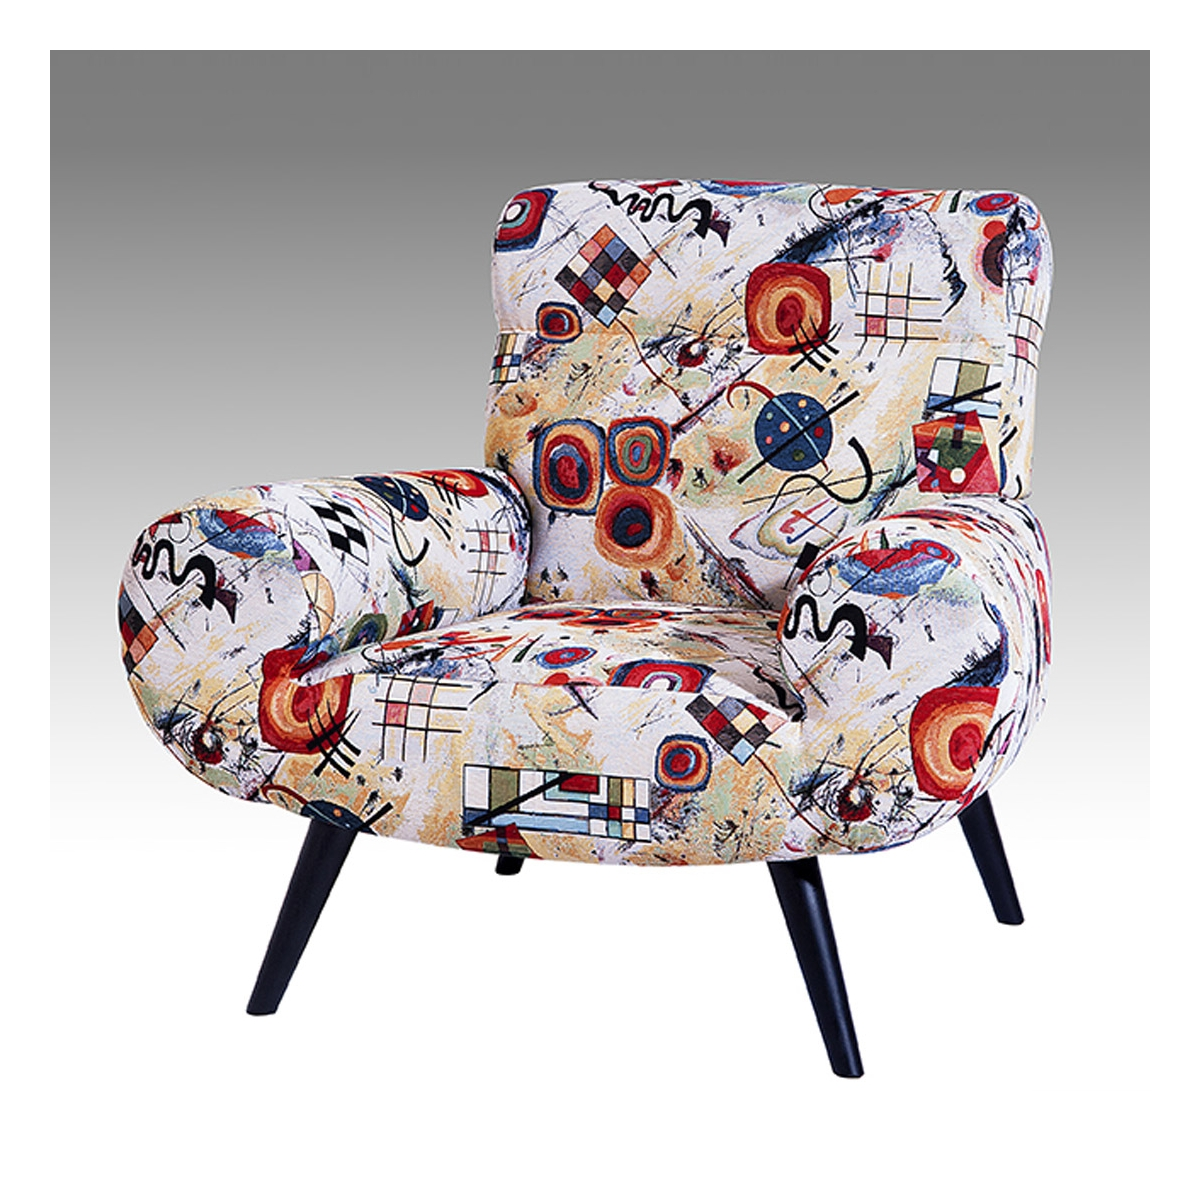 Fauteuil contemporain design Calipso ALC - Zendart Design